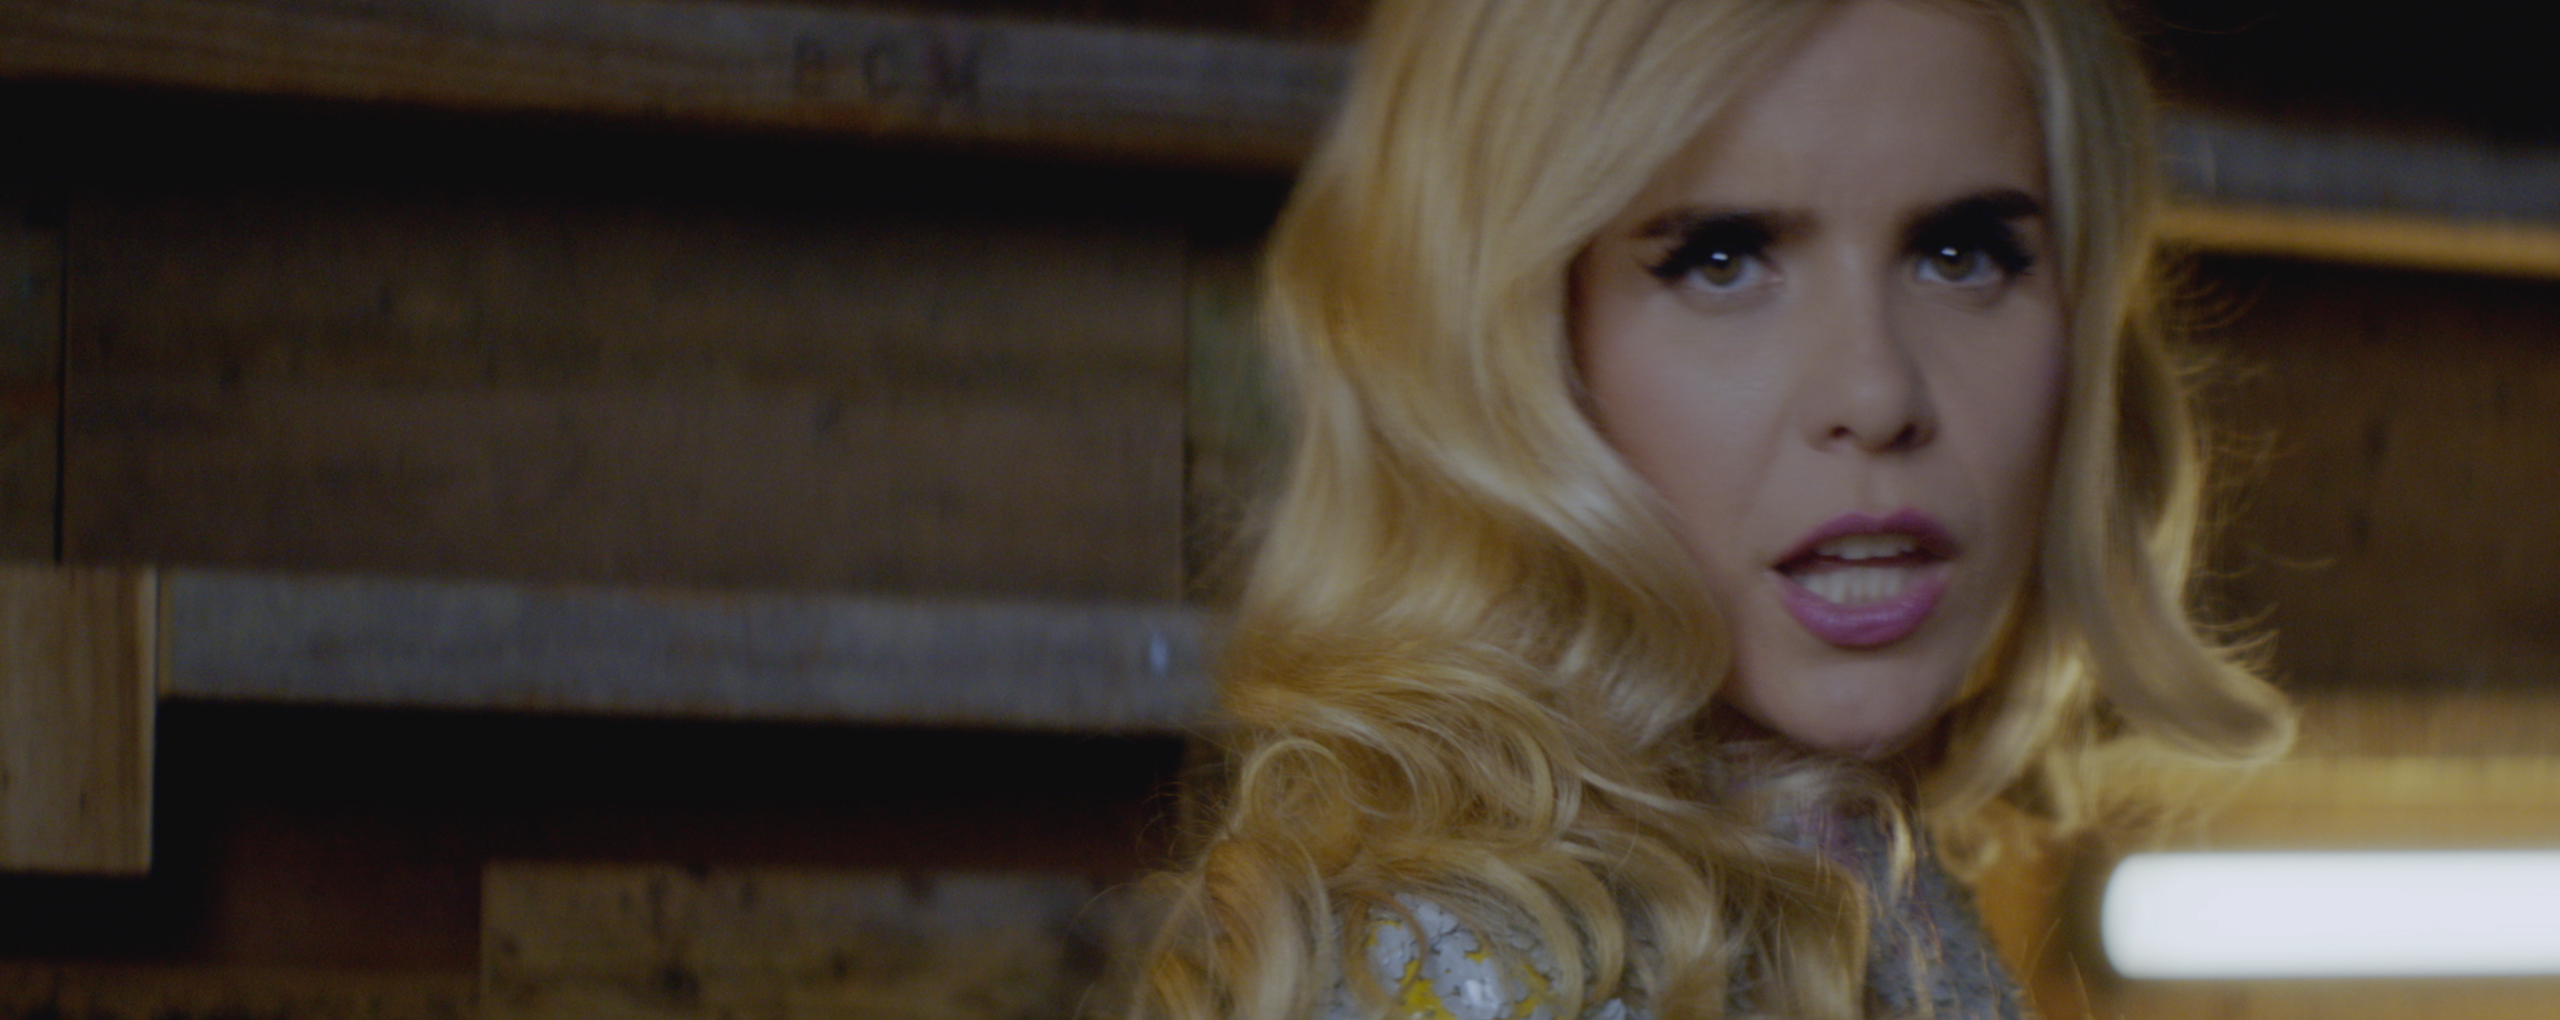 Paloma Faith Matt Beecroft Director of Photography